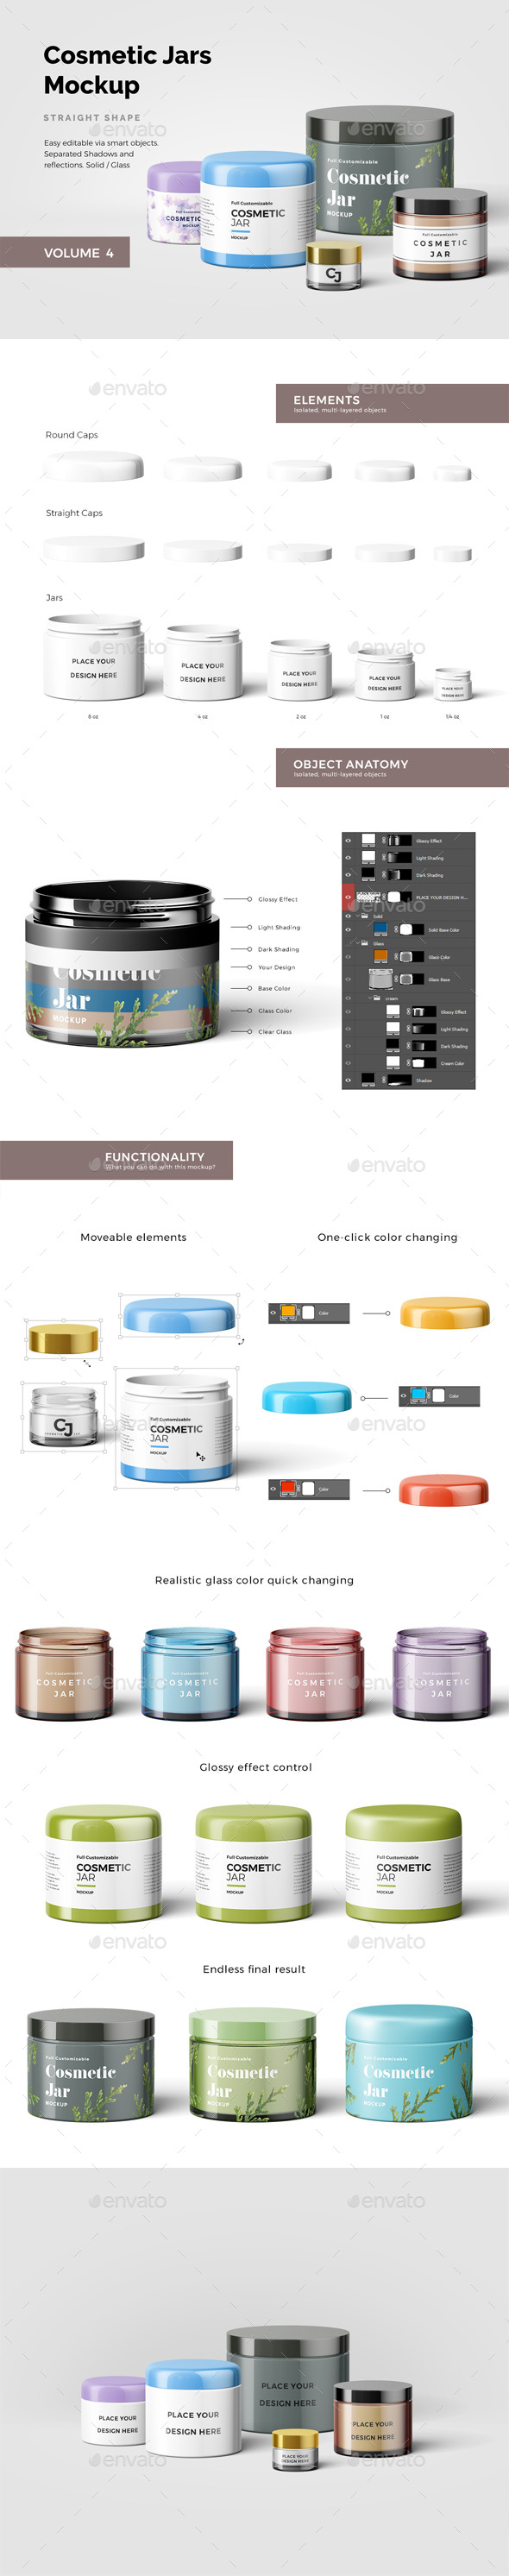 Cosmetic Jars Mockup - Beauty Packaging